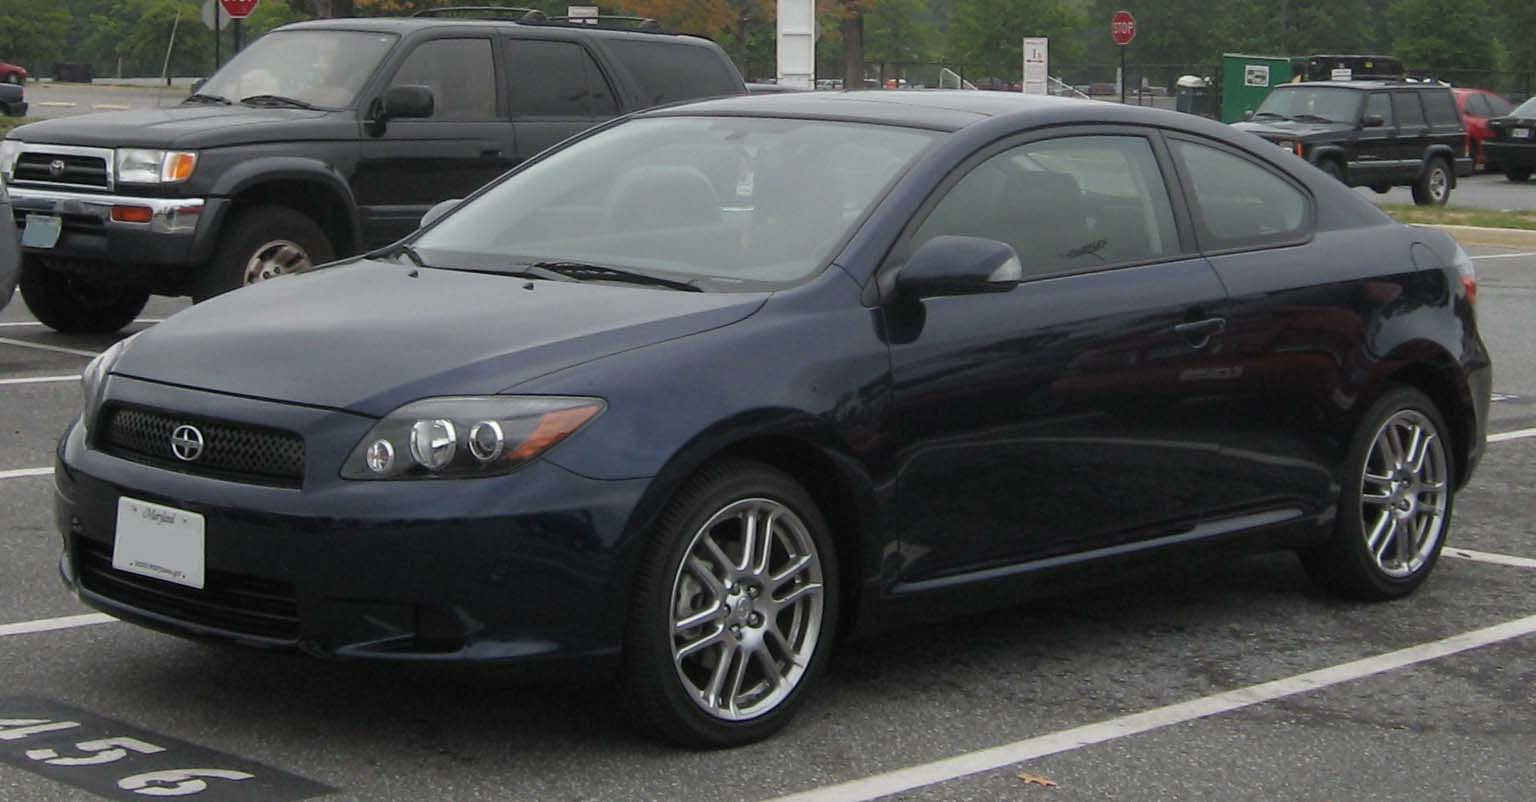 scion tc – pictures, information and specs - auto-database